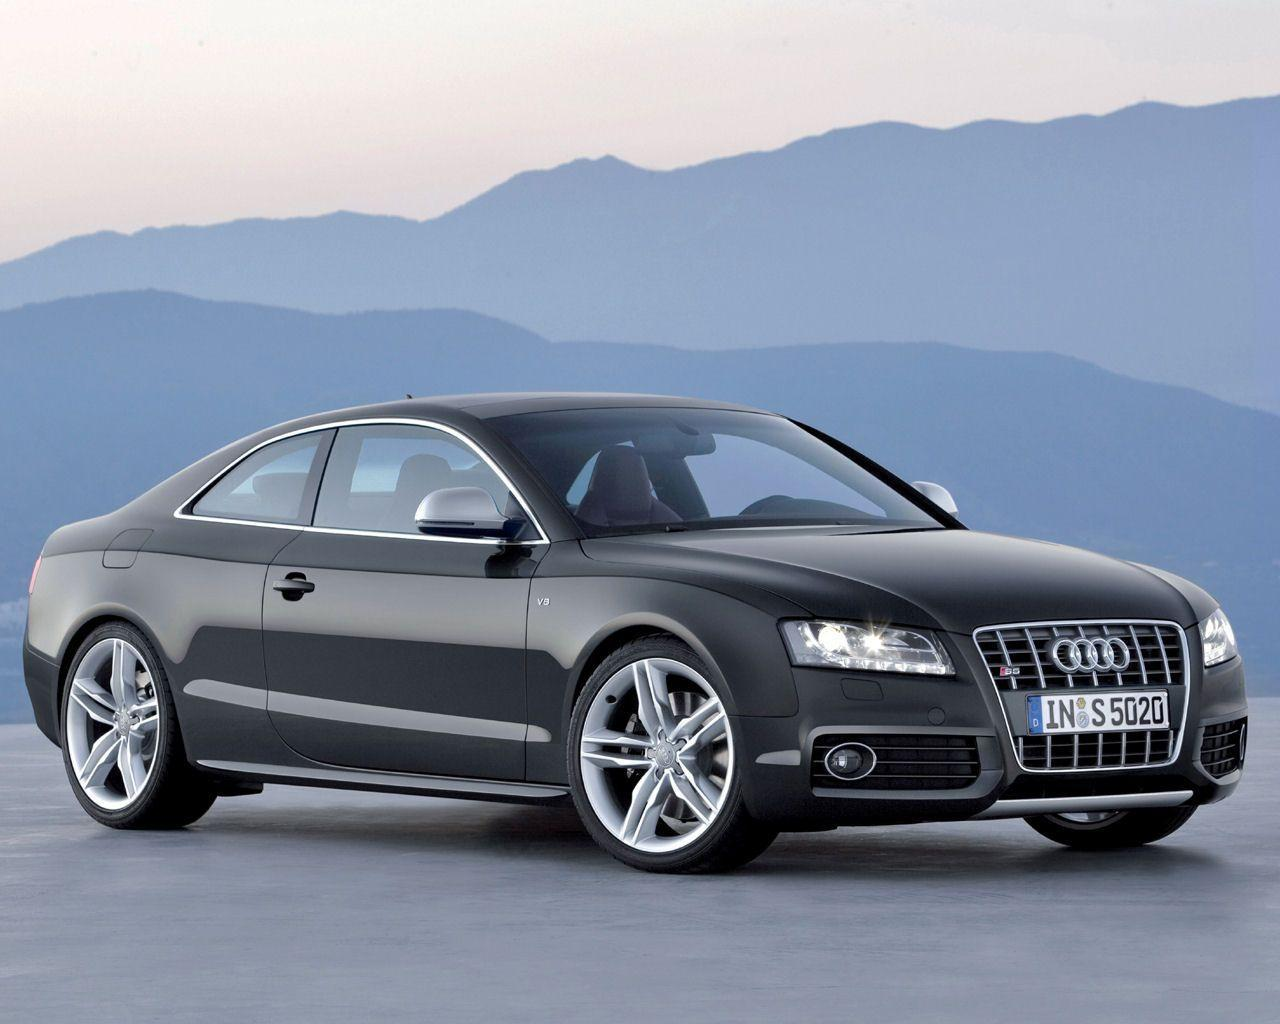 Audi A5 Wallpapers